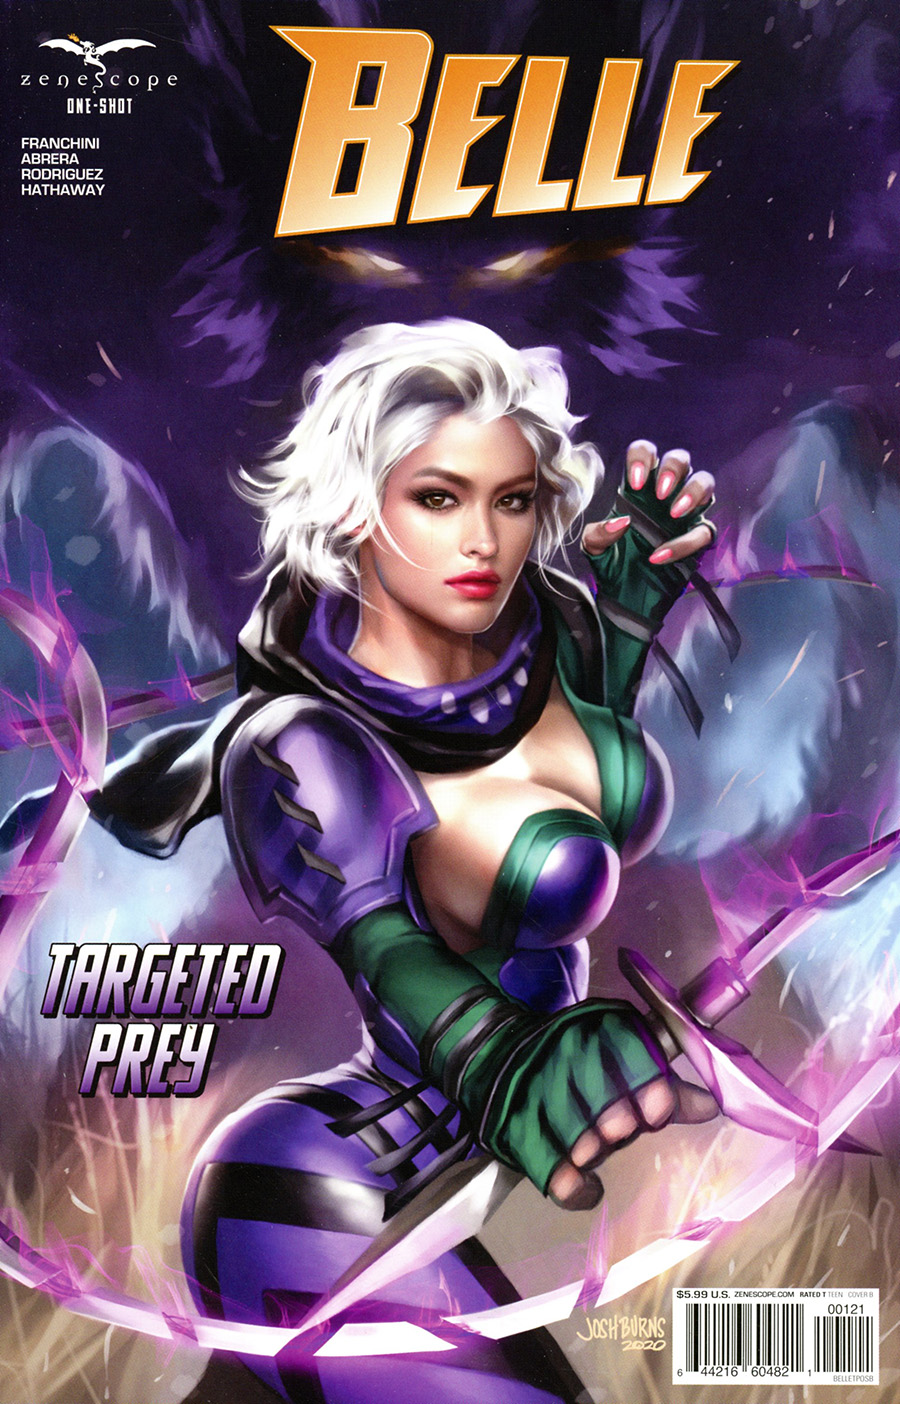 Grimm Fairy Tales Presents Belle Targeted Prey One Shot Cover B Josh Burns